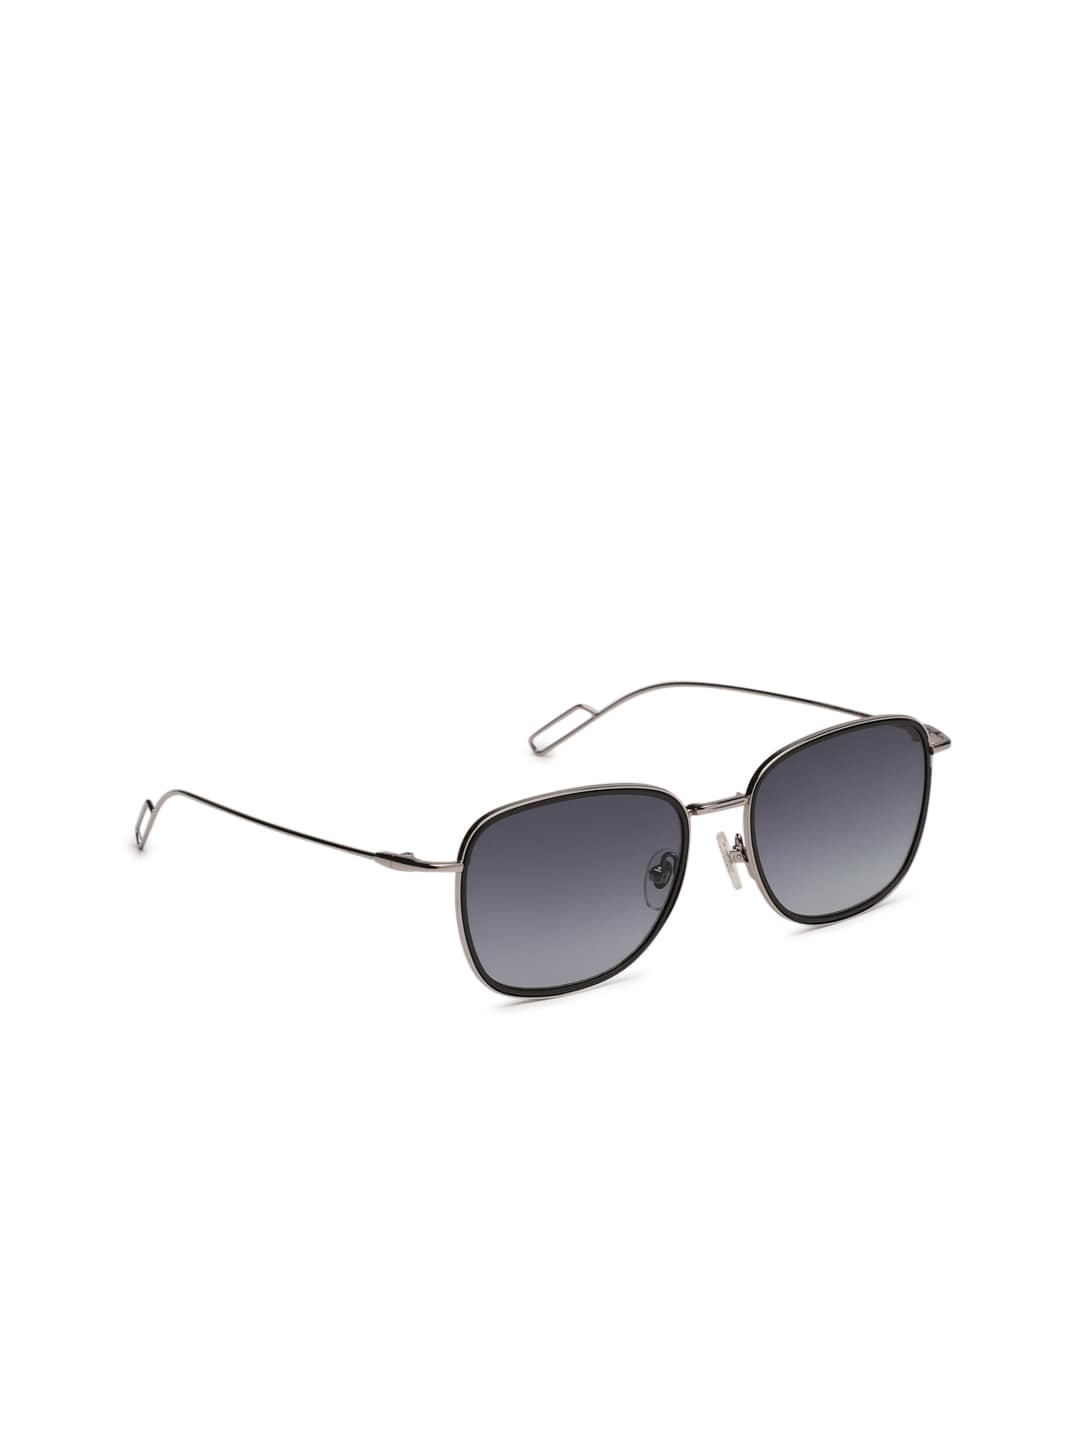 bb3f56d834 Sunglasses Frame Watches - Buy Sunglasses Frame Watches online in India